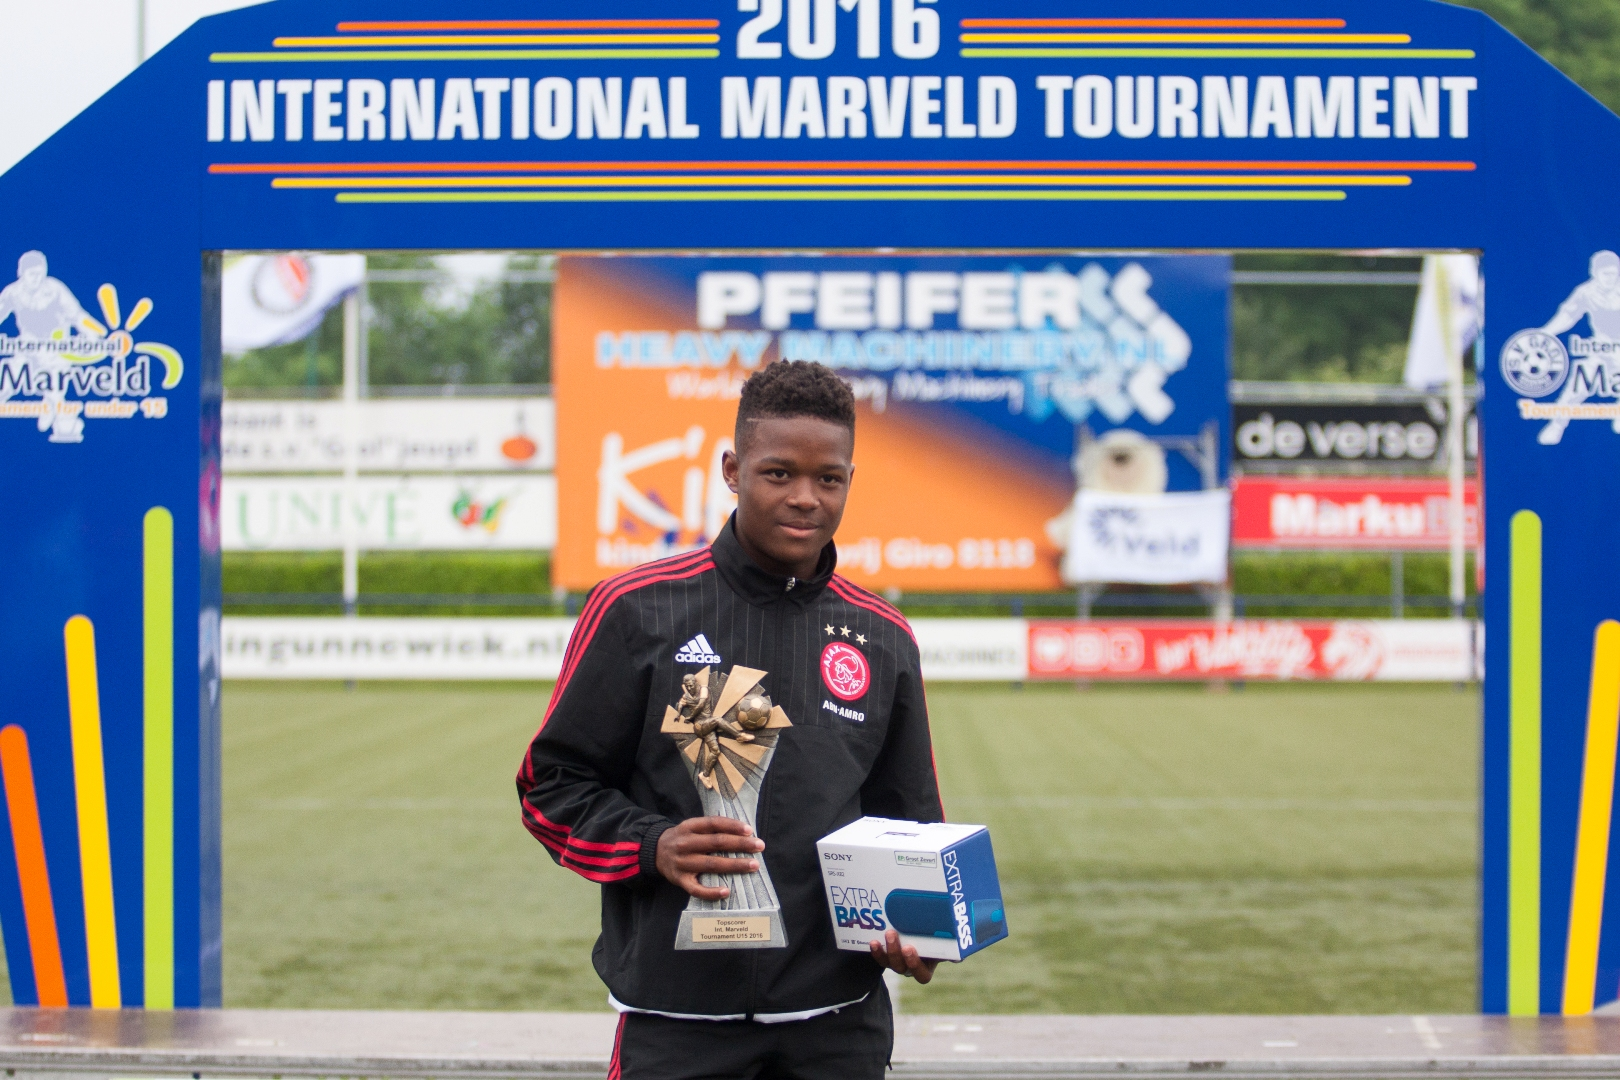 Marveld Tournament 2016 - Topscorer Daishawn Redan of Ajax